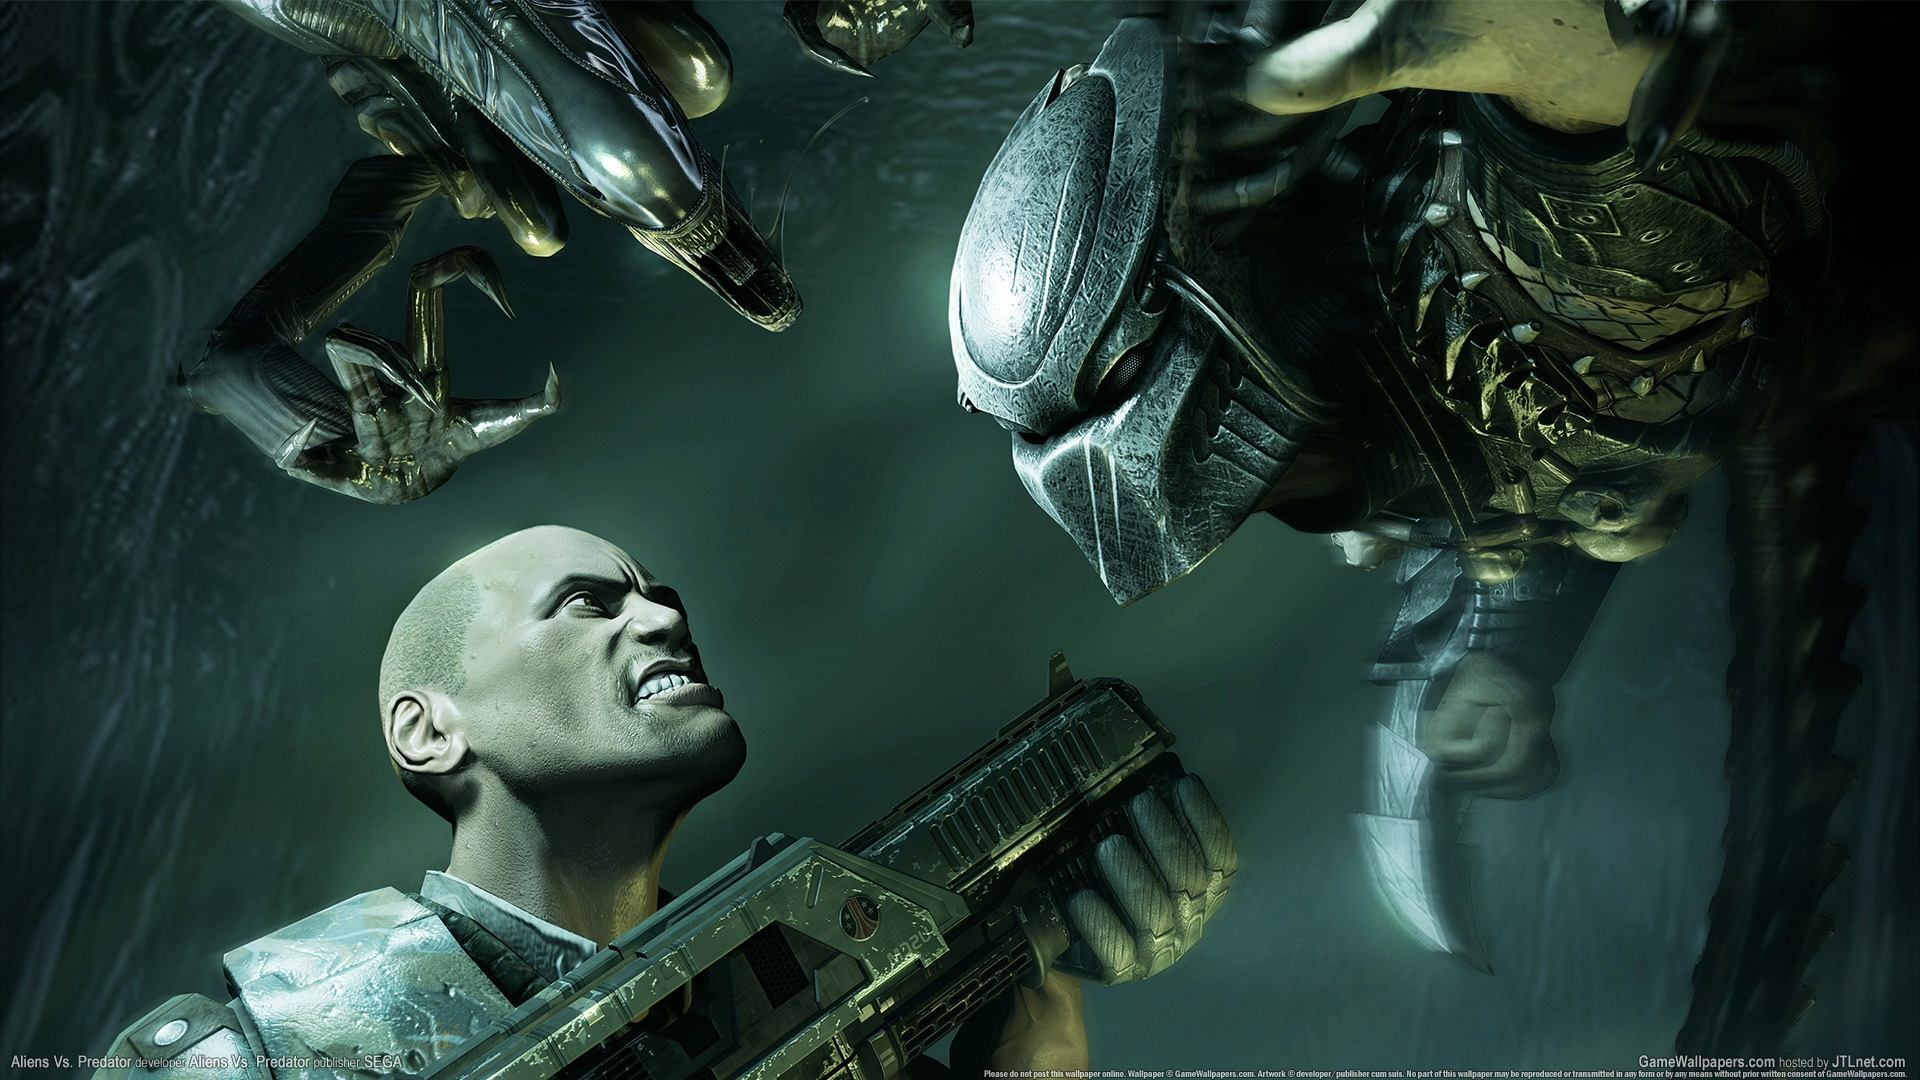 1920x1080 Alien Vs Predator, aliens, console, games